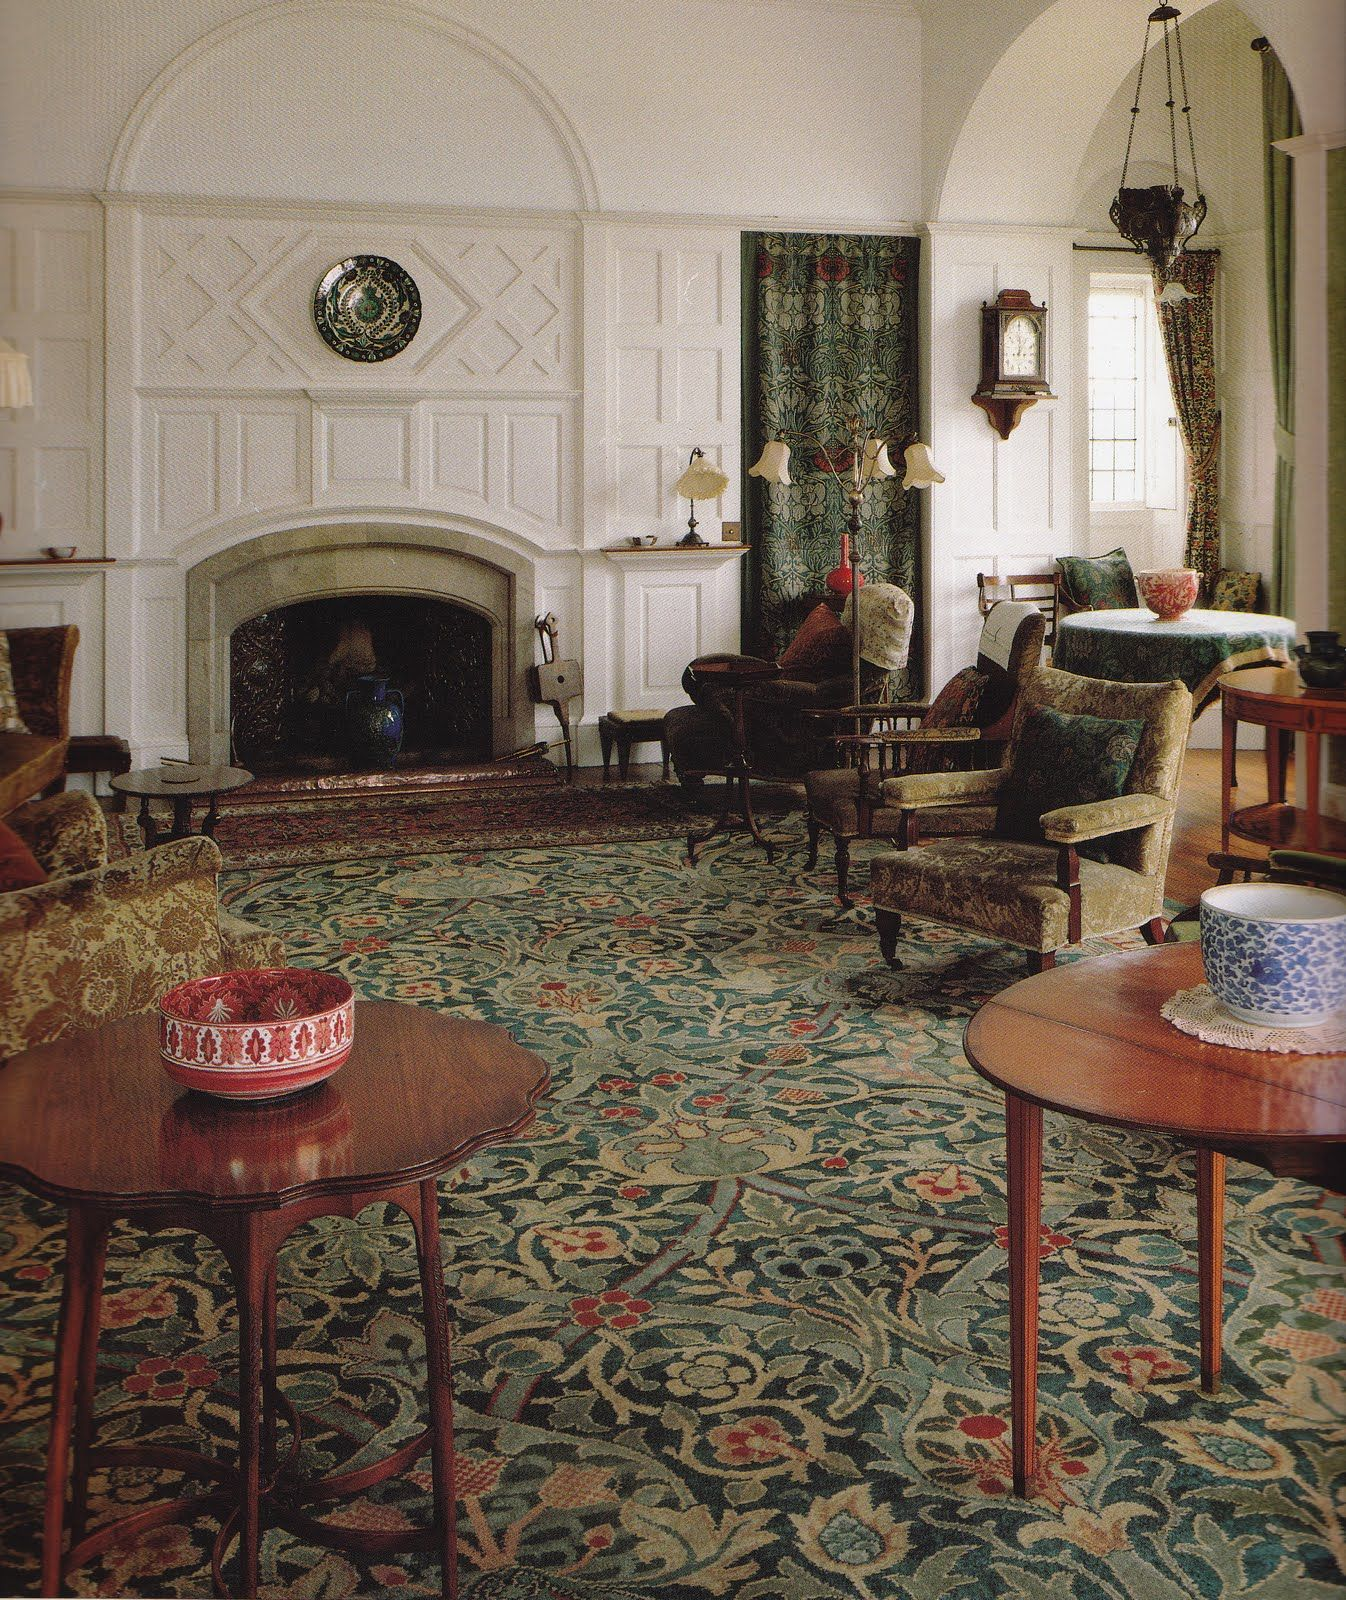 The Drawing Room Standen 1891 Philip Webb Architect William Morris Designer Carpet Wall